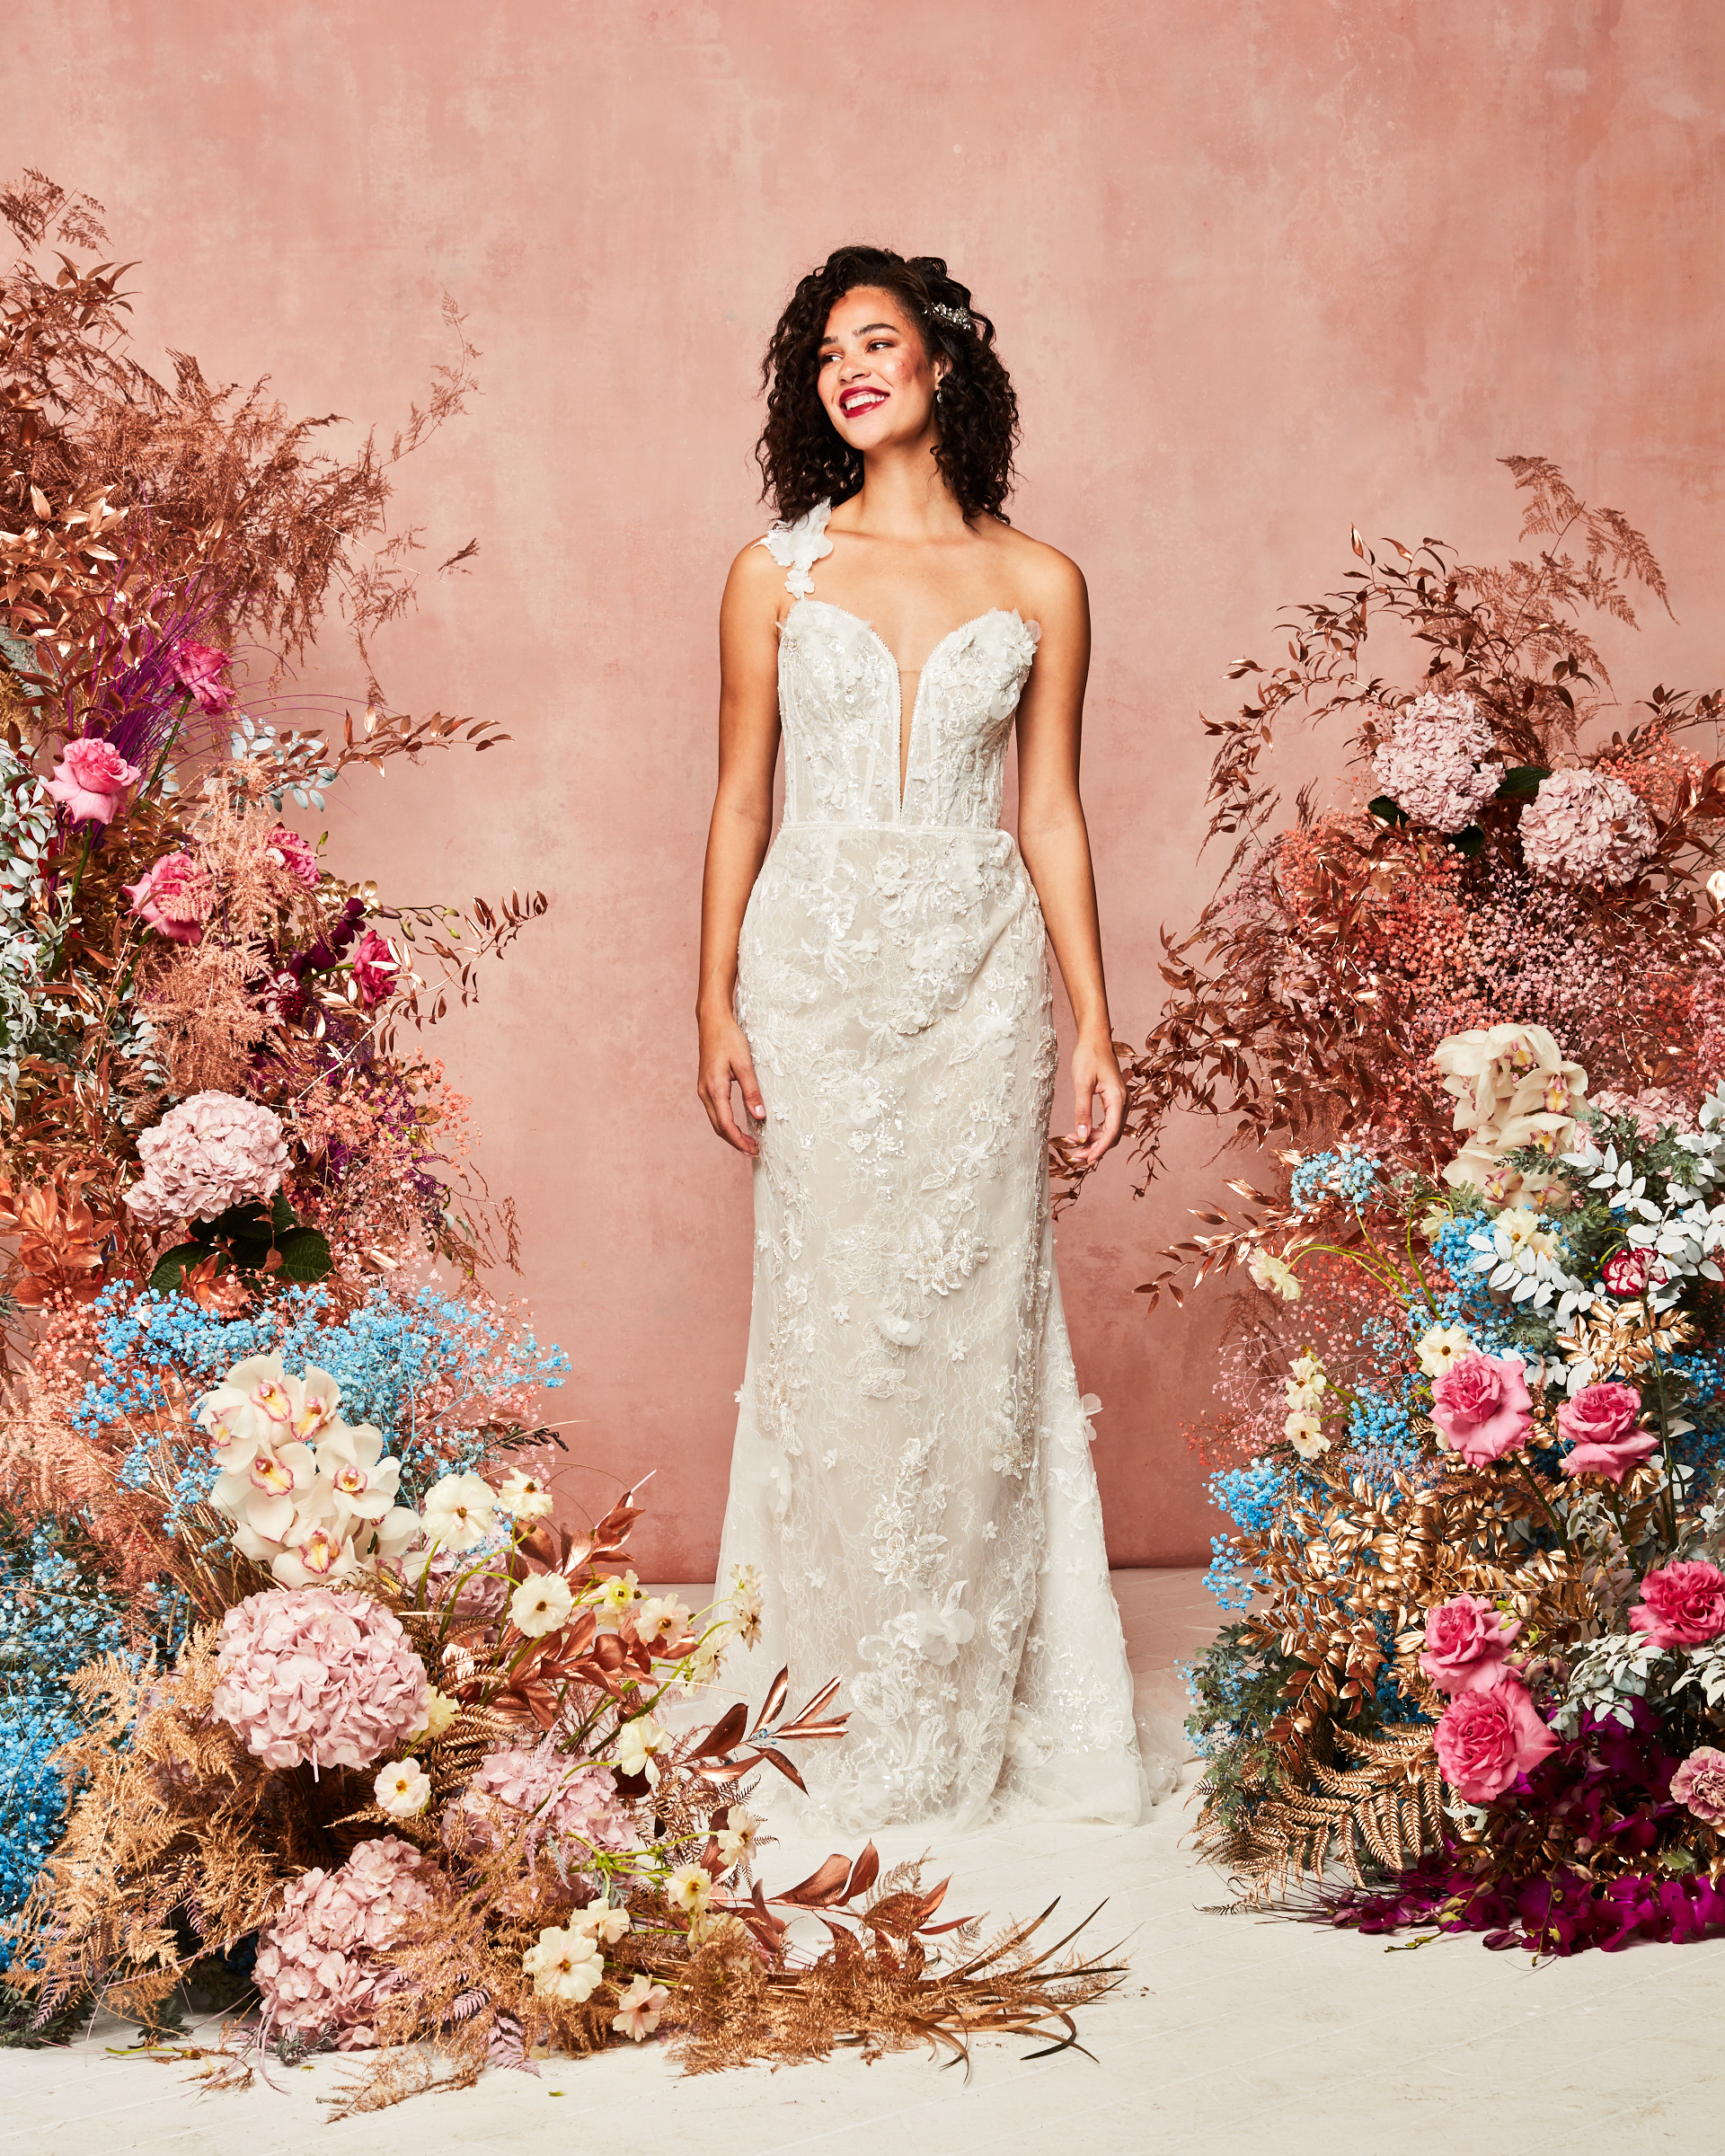 plunge neck gown with removable sleeves sporting one-shoulder look from David's Bridal Spring 2021 Collection